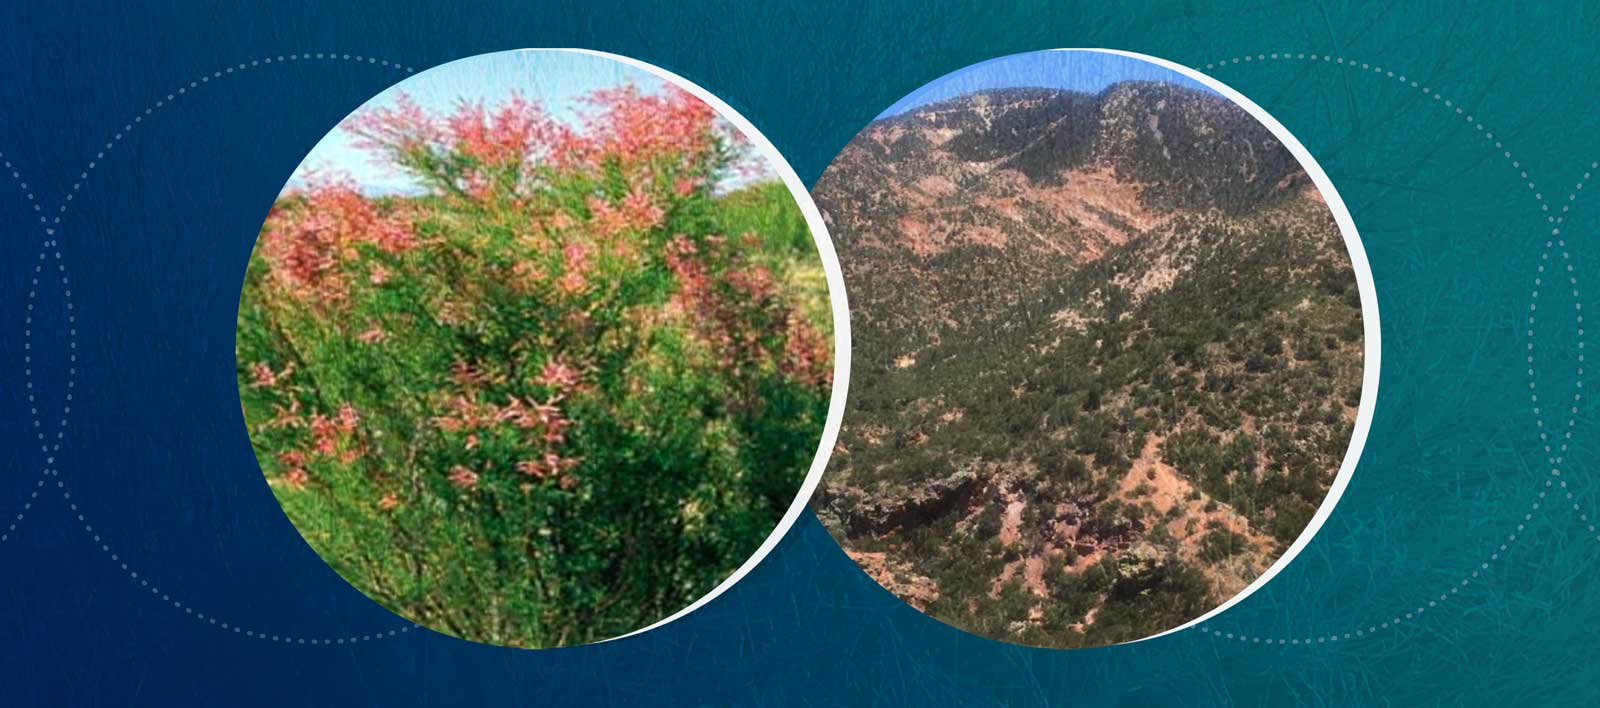 A graphic depicting the Patagonia Mountains and Tamarisk plant